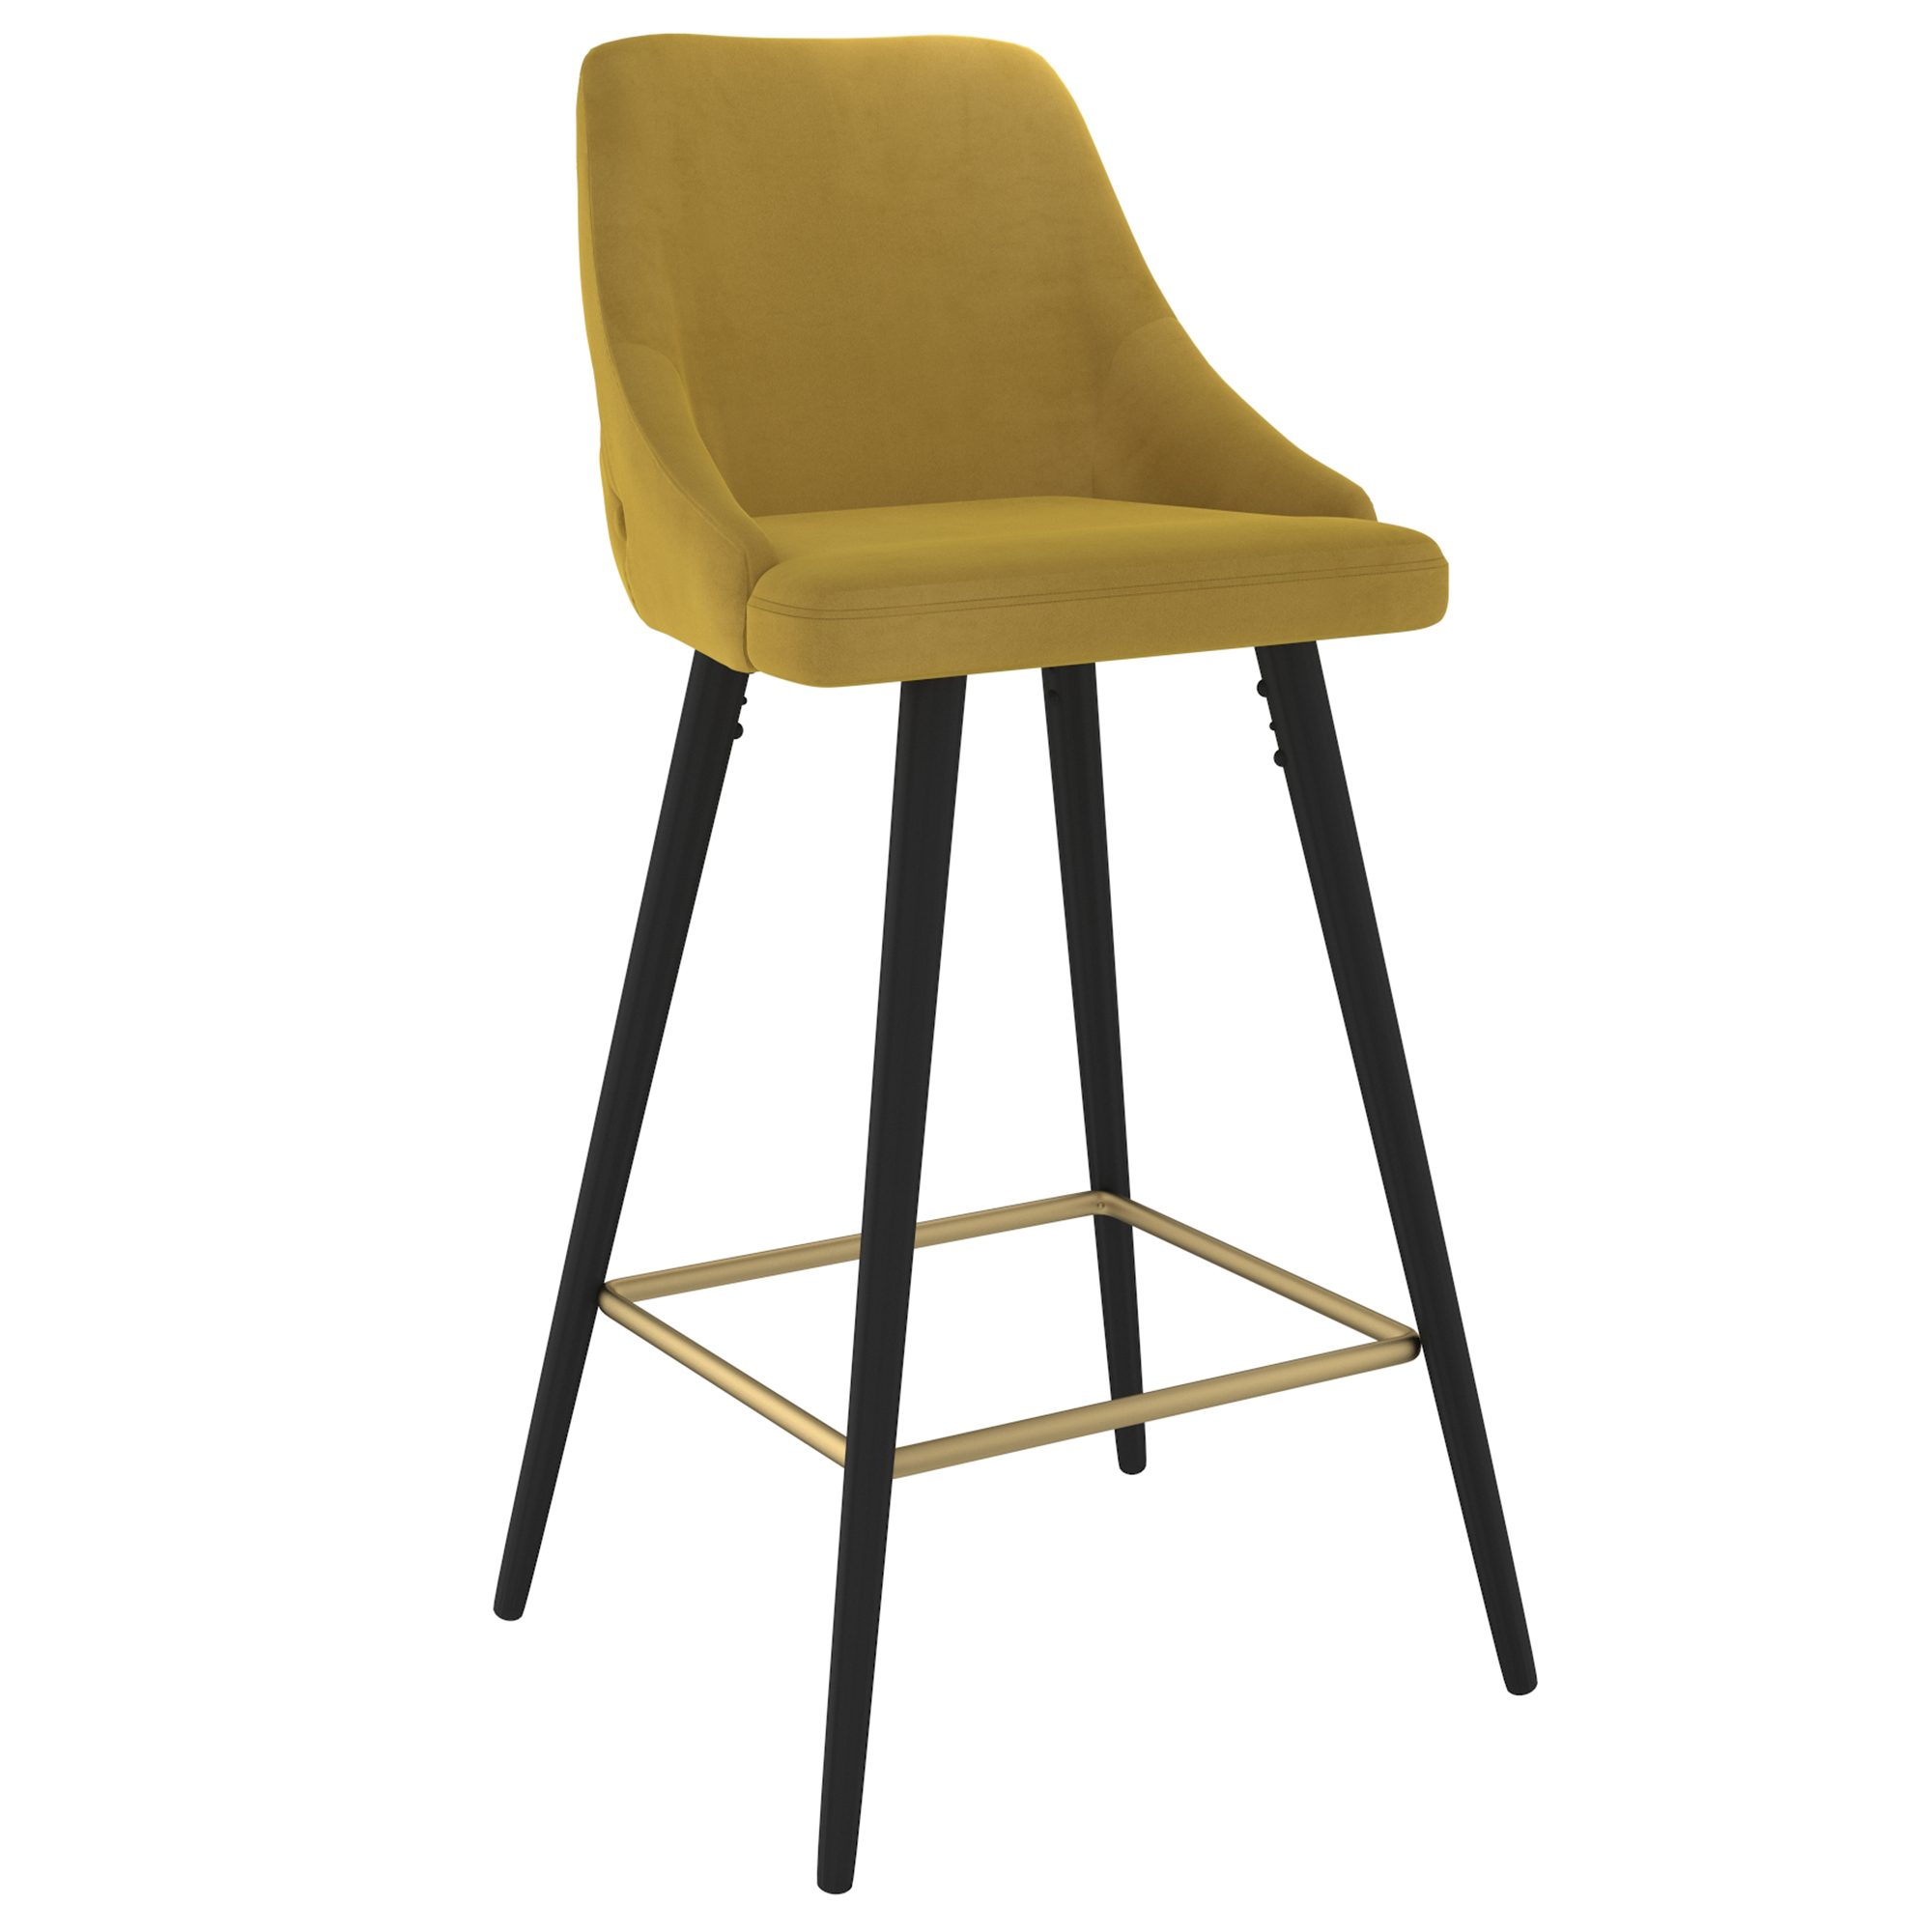 Set of 2 Modern Velvet & Metal 26'' Counter Stool in Mustard